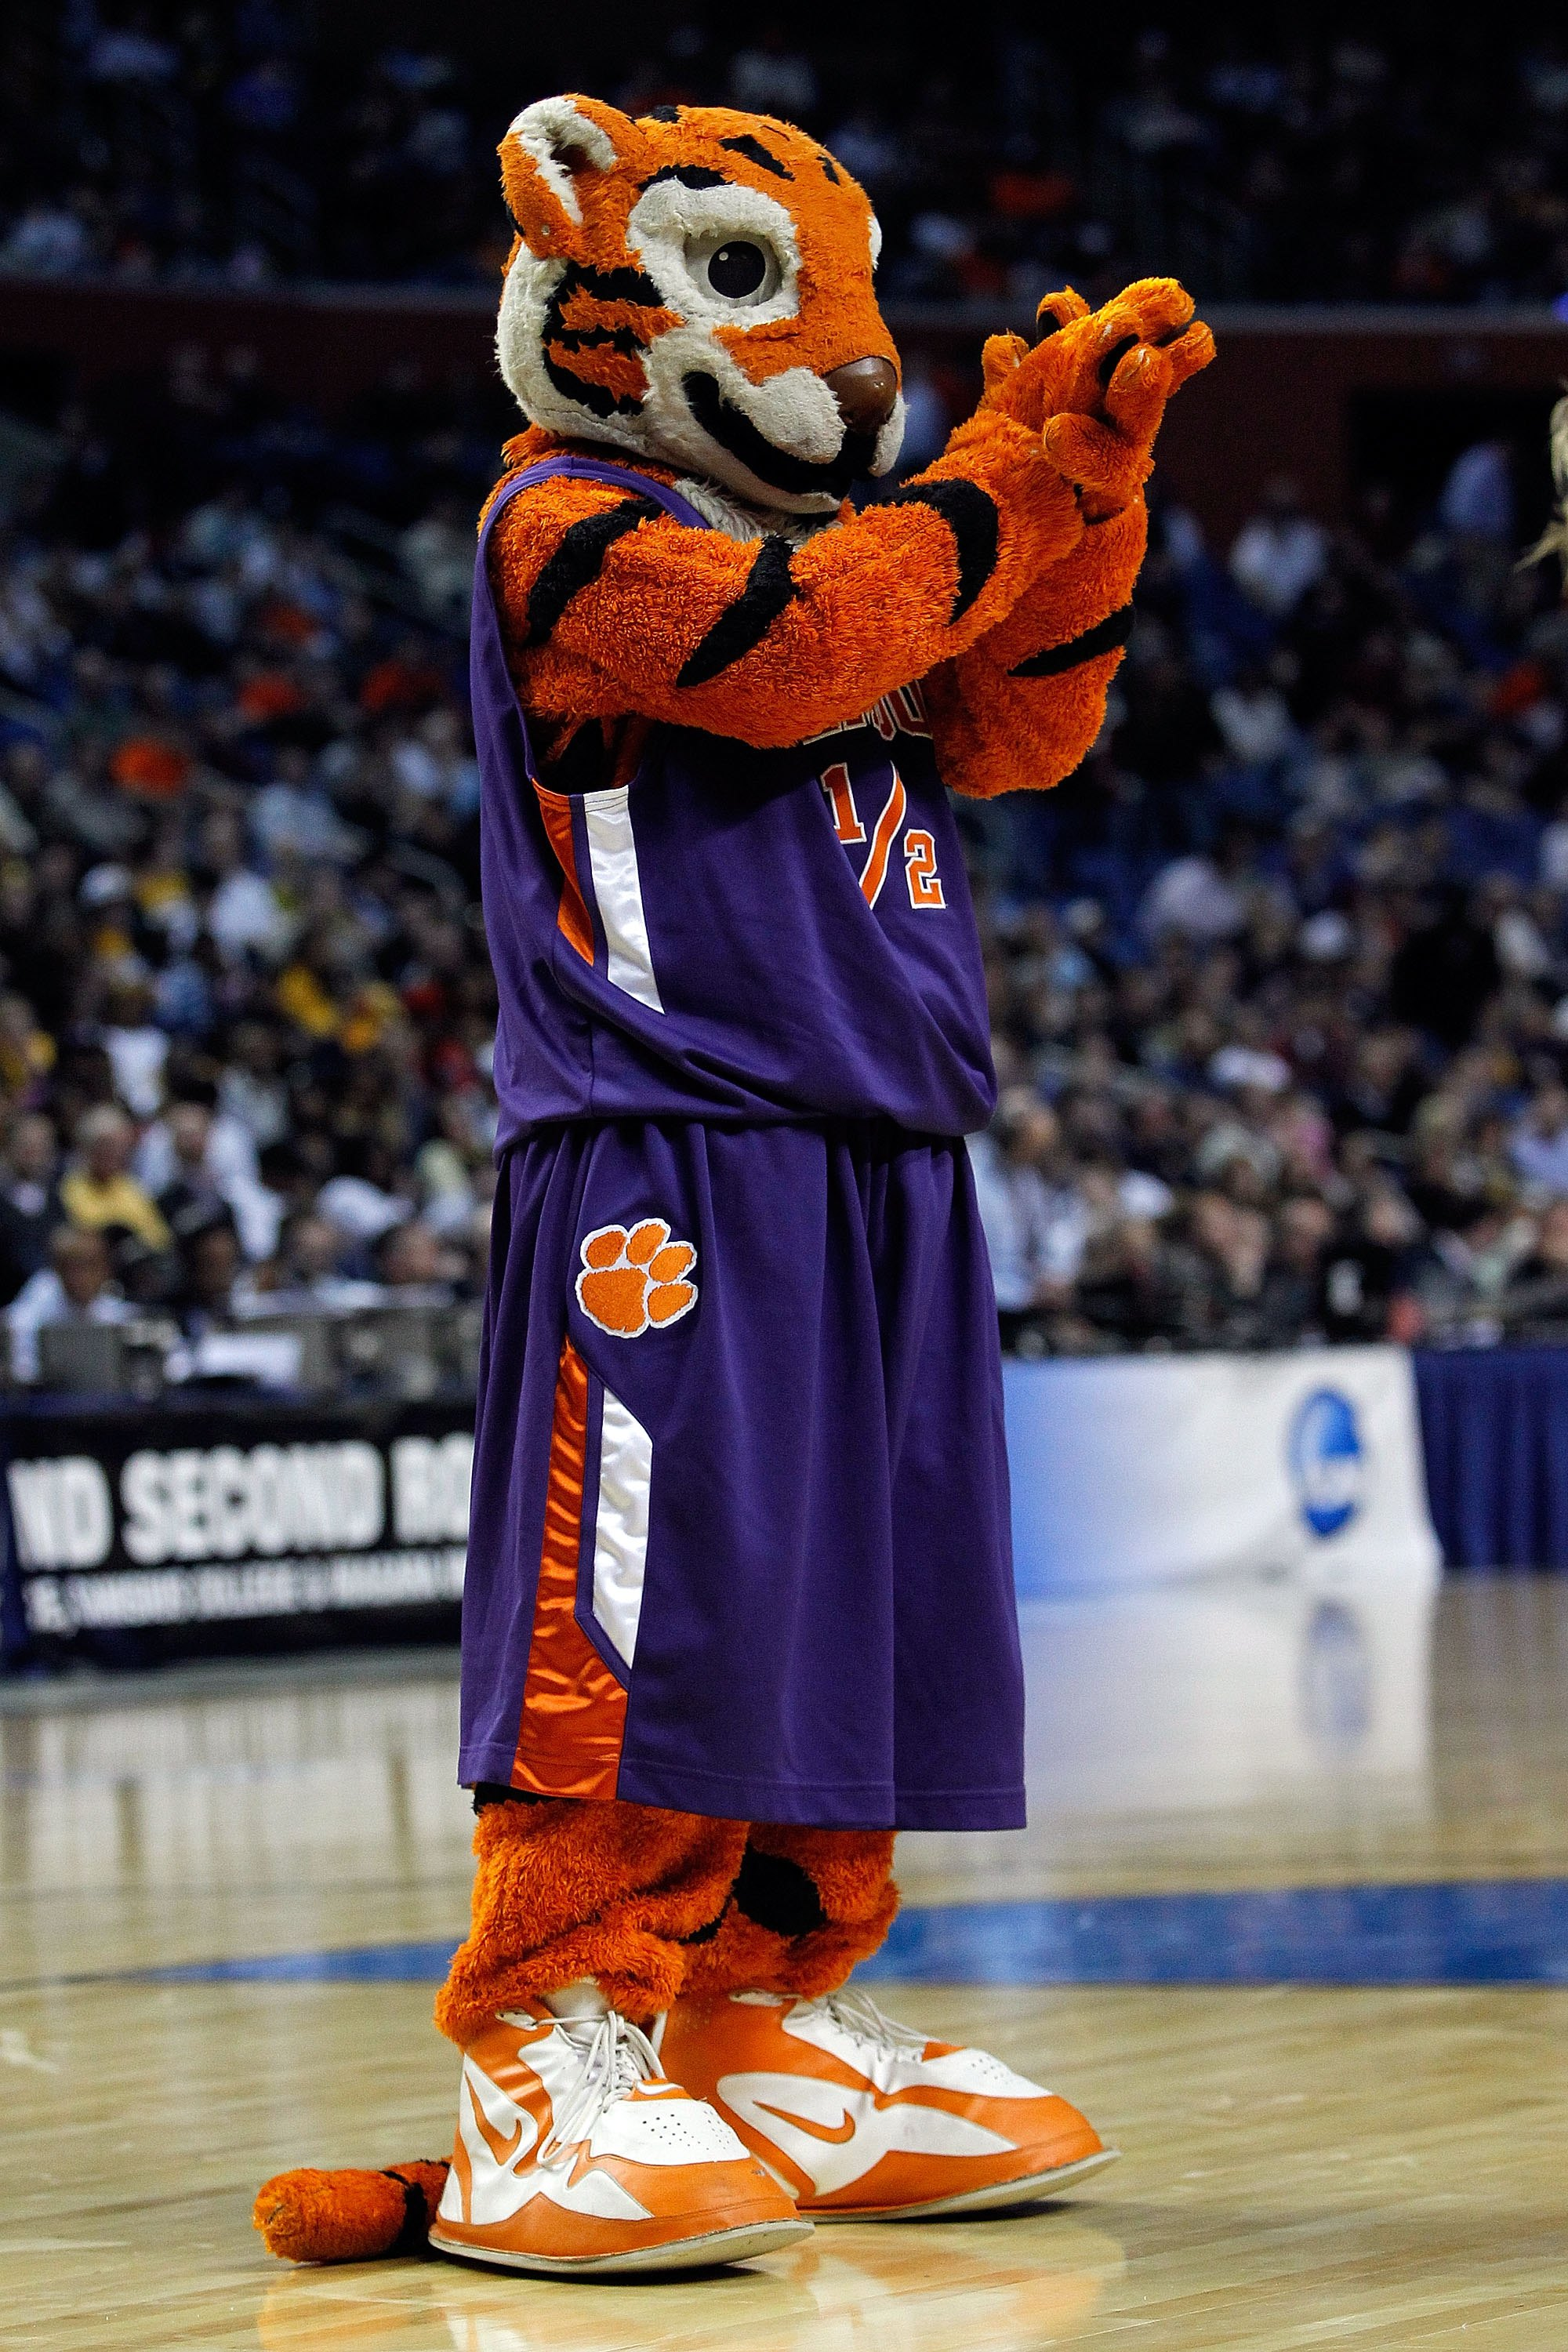 BUFFALO, NY - MARCH 19:  The Clemson Tigers mascot performs  during the first round of the 2010 NCAA men's basketball tournament at HSBC Arena on March 19, 2010 in Buffalo, New York.  (Photo by Michael Heiman/Getty Images)